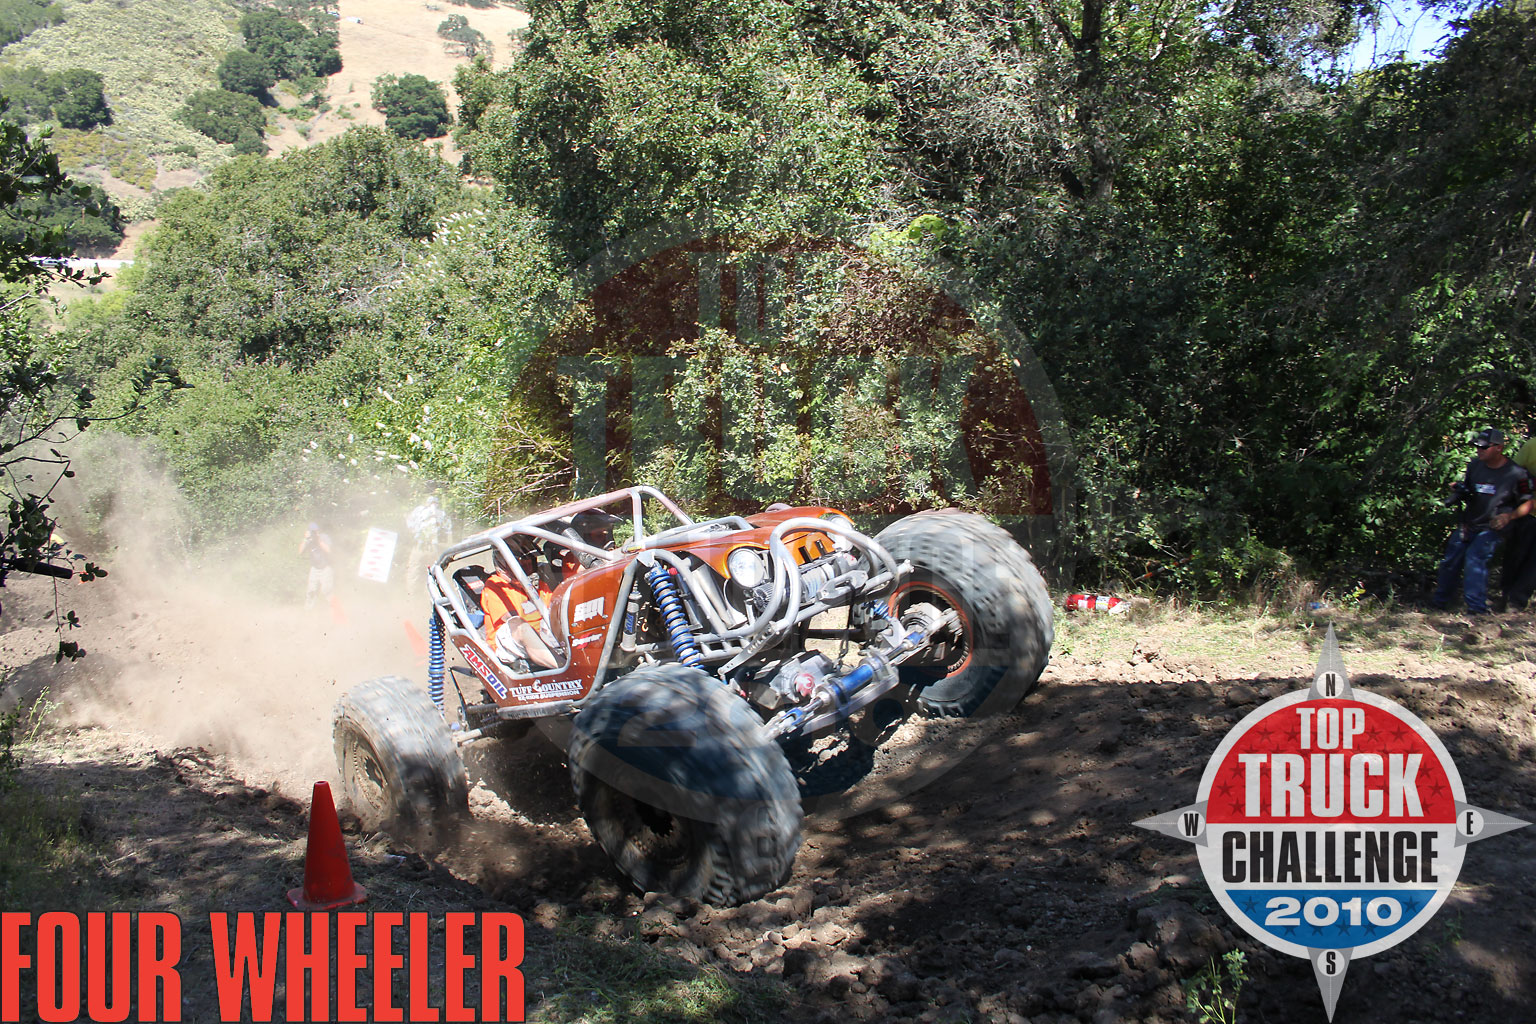 129 1006 4820+2010 top truck challenge hill climb+leo kuether 2007 cole works fat girl buggy